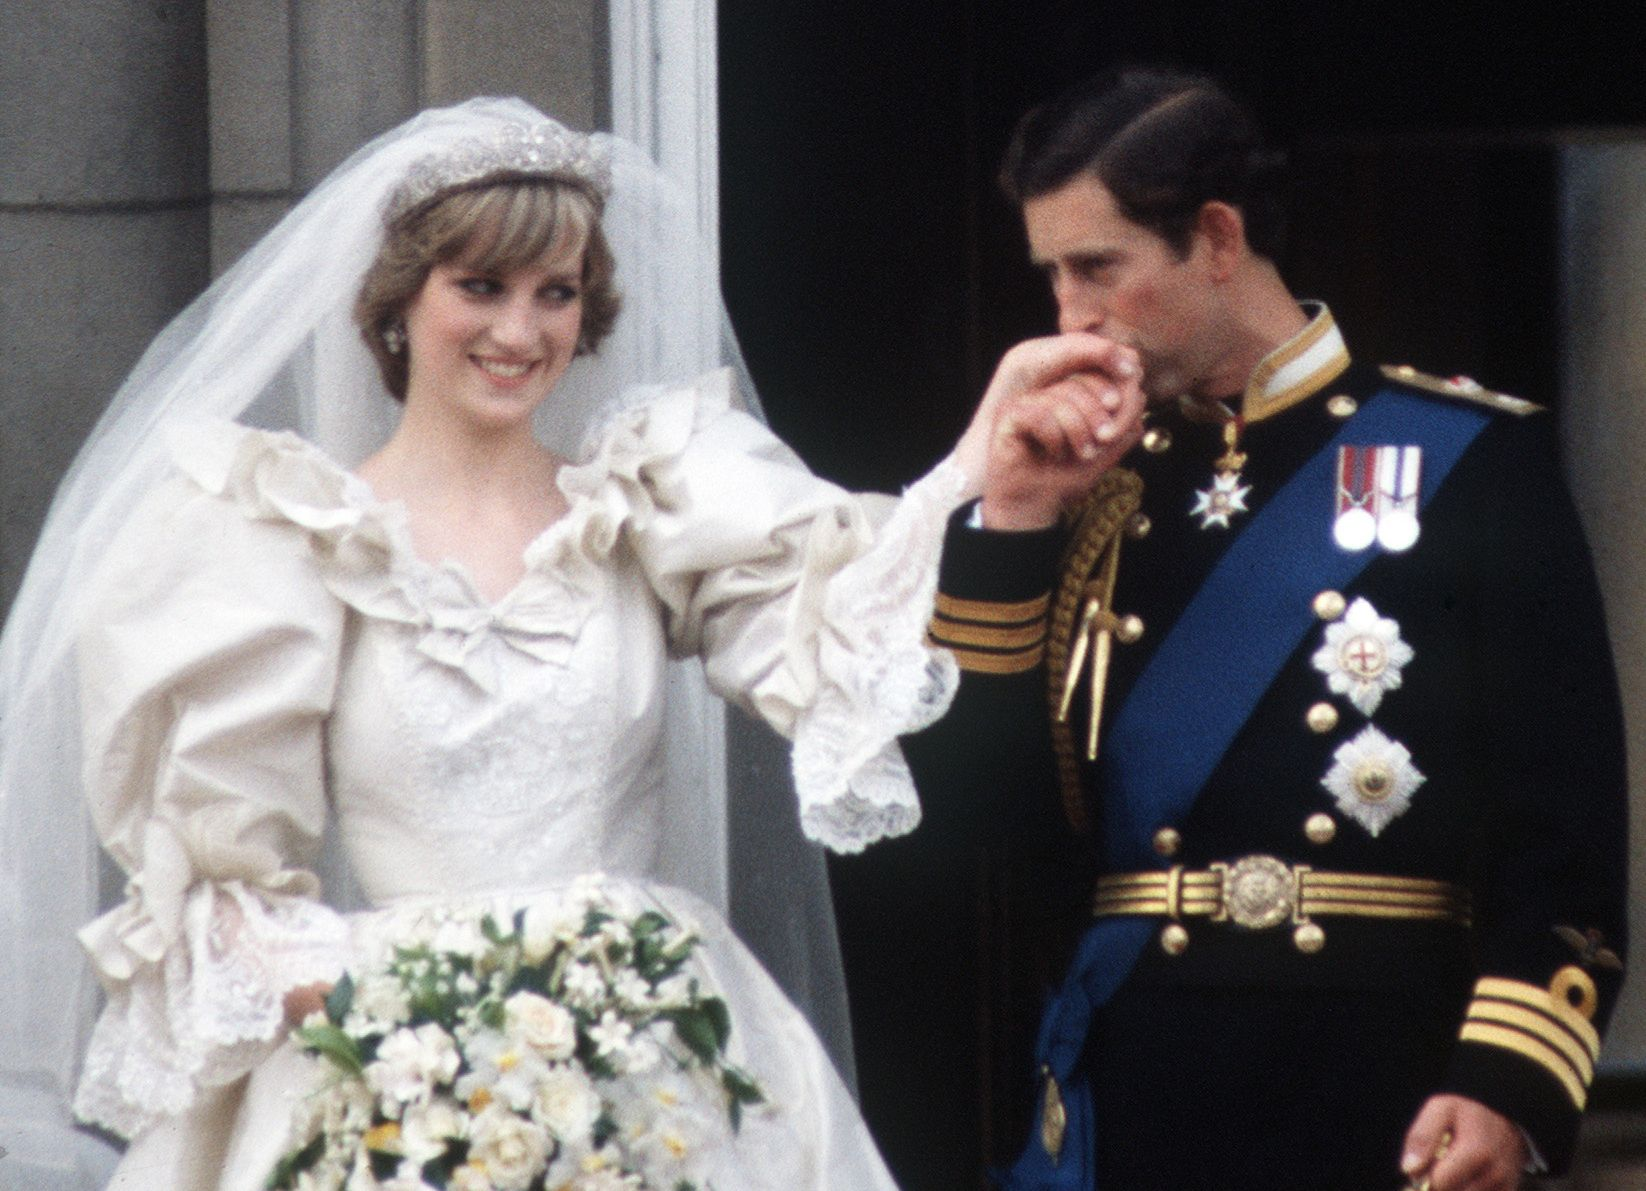 This image shows Prince Charles kissing Princess Diana's hand on the day of their wedding on the balcony of Buckingham Palace.